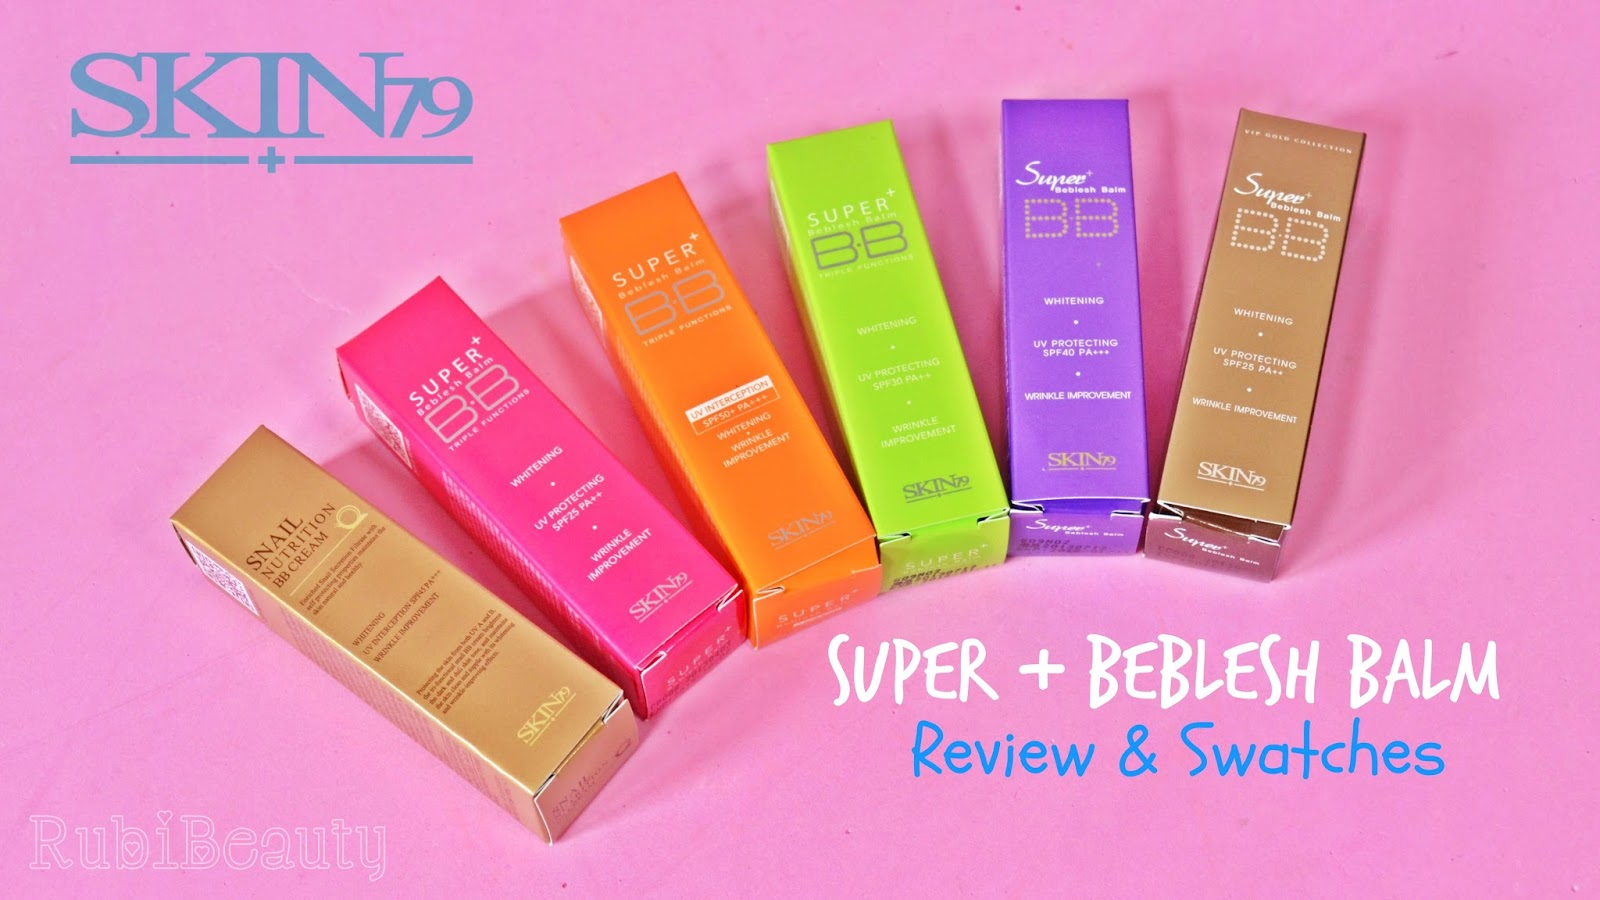 rubibeauty review opinion personal Super + Beblesh Balm BB Cream Skin 79 Hot pink orange vip gold snail silky purple